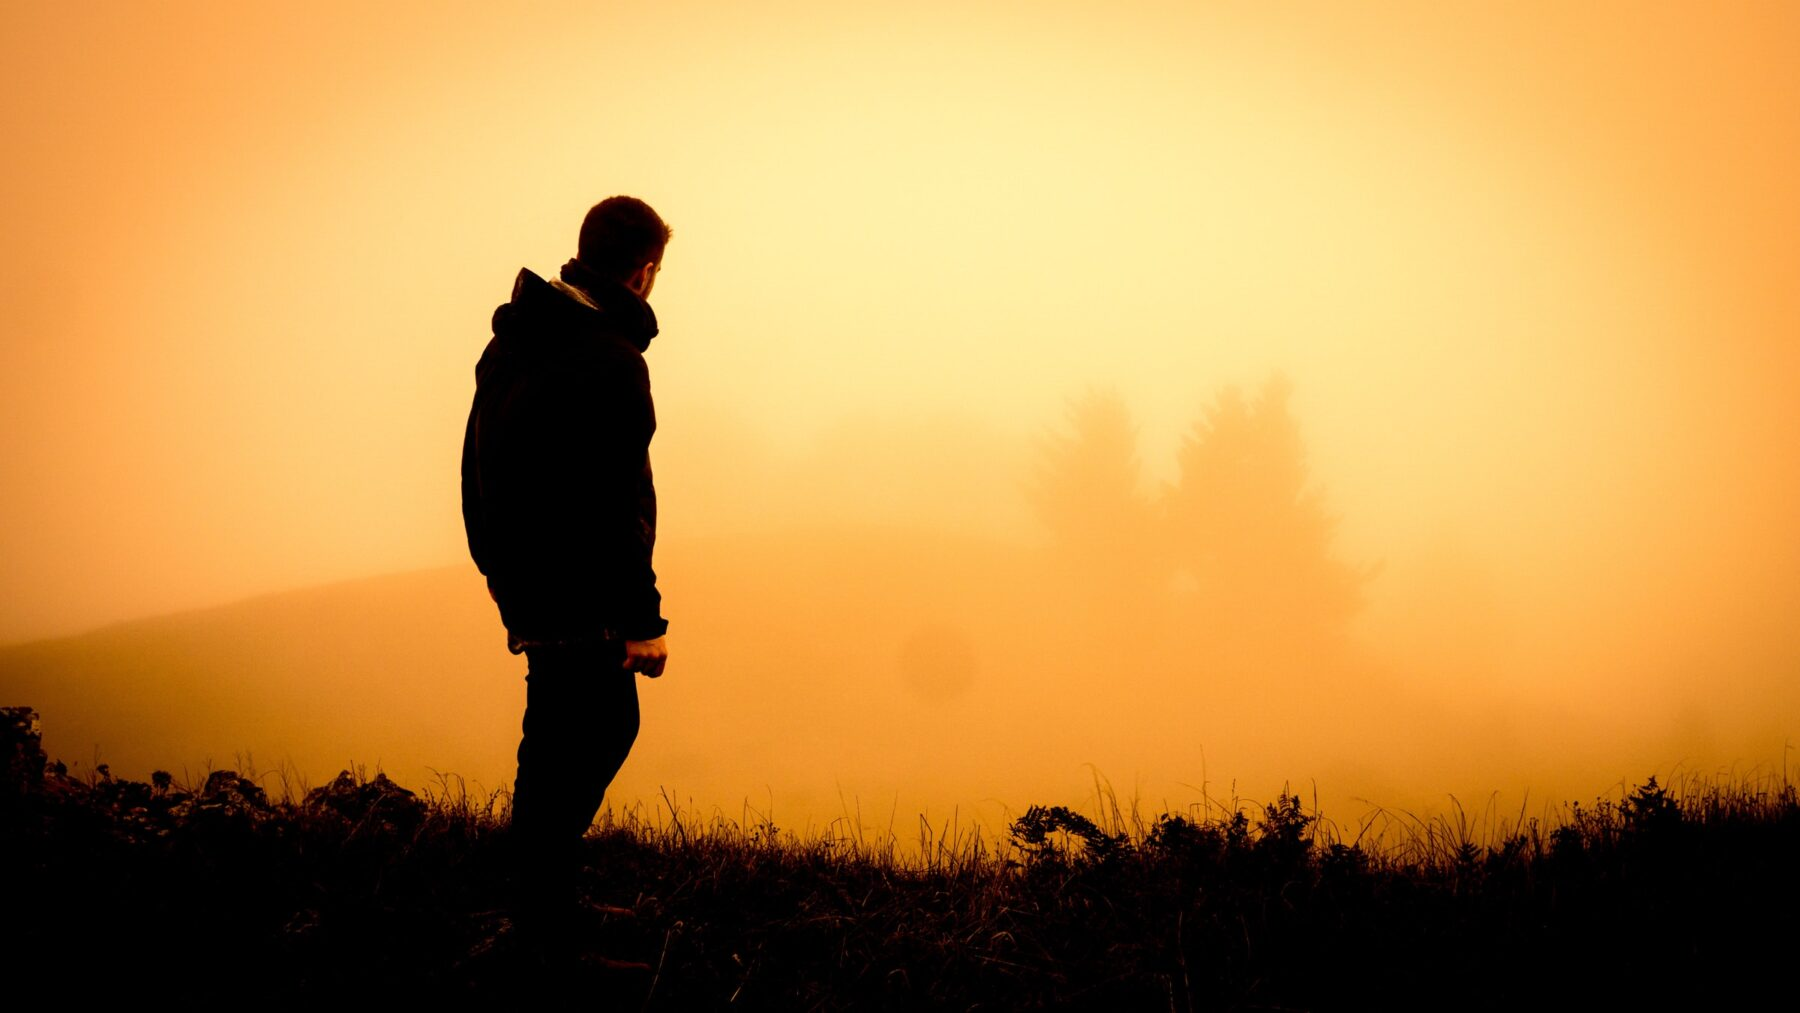 Photograph of a young man standing on a hill looking out on a misty sunrise